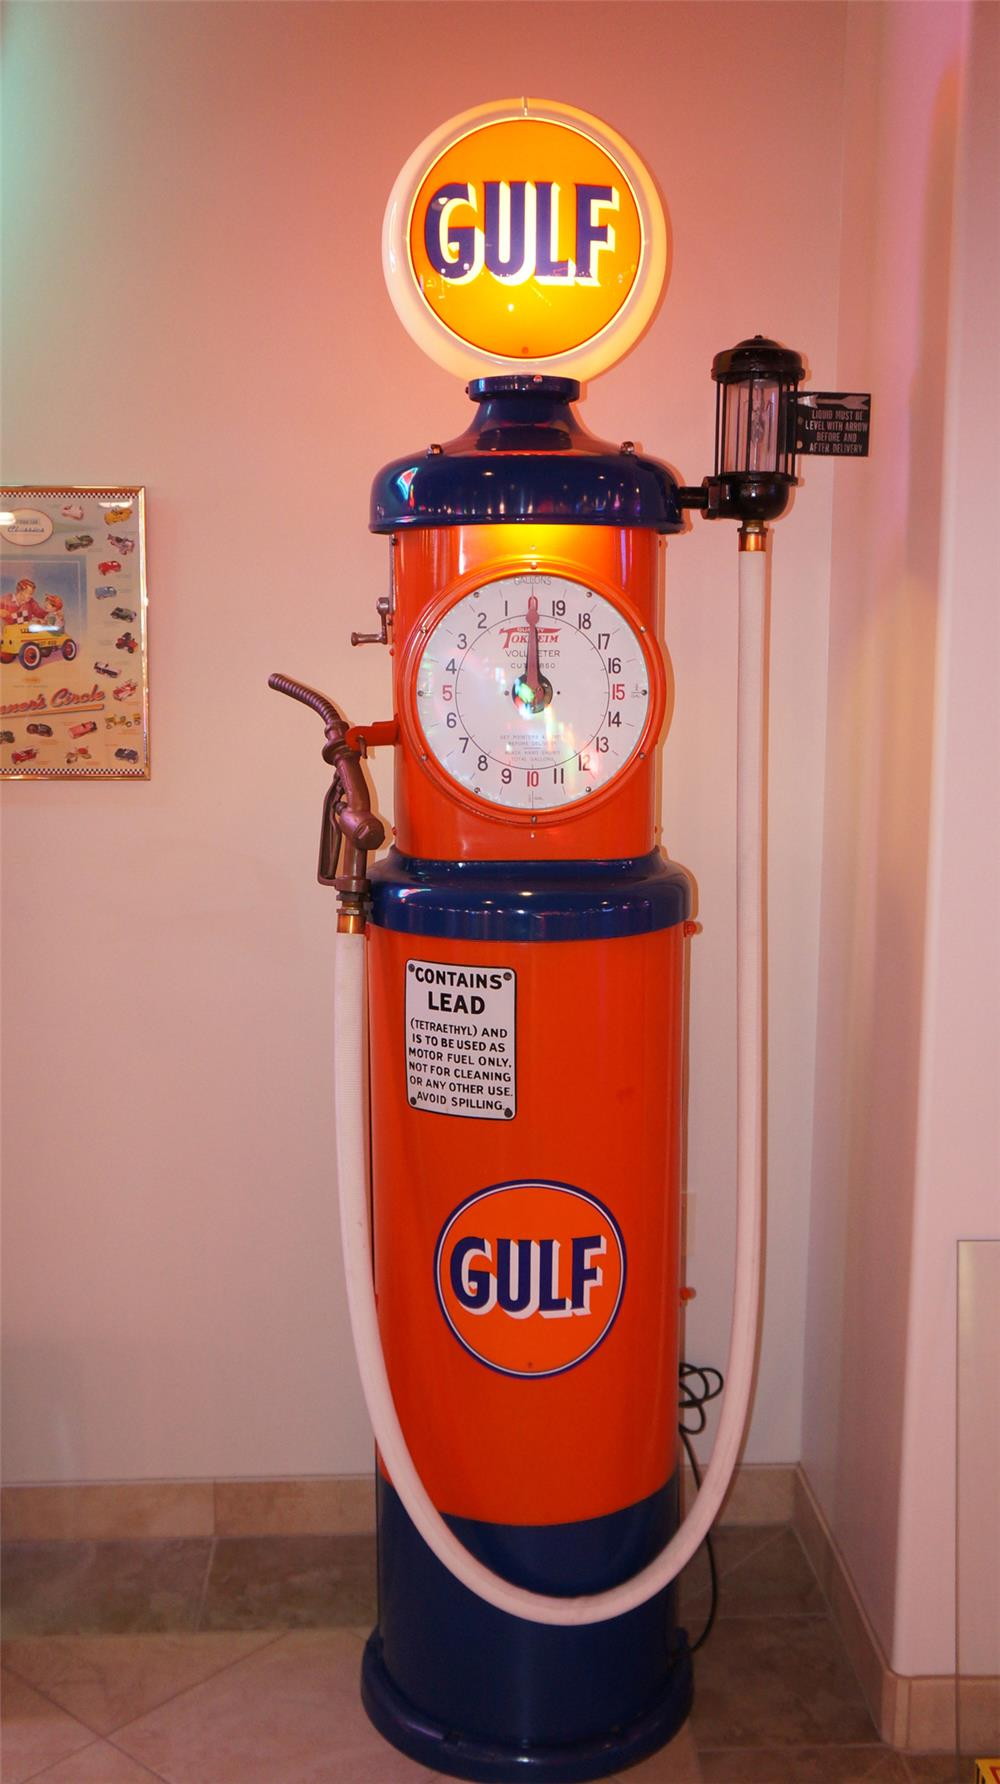 1920 u0026 39 s tokheim 850 gulf oil restored clock face gas pump